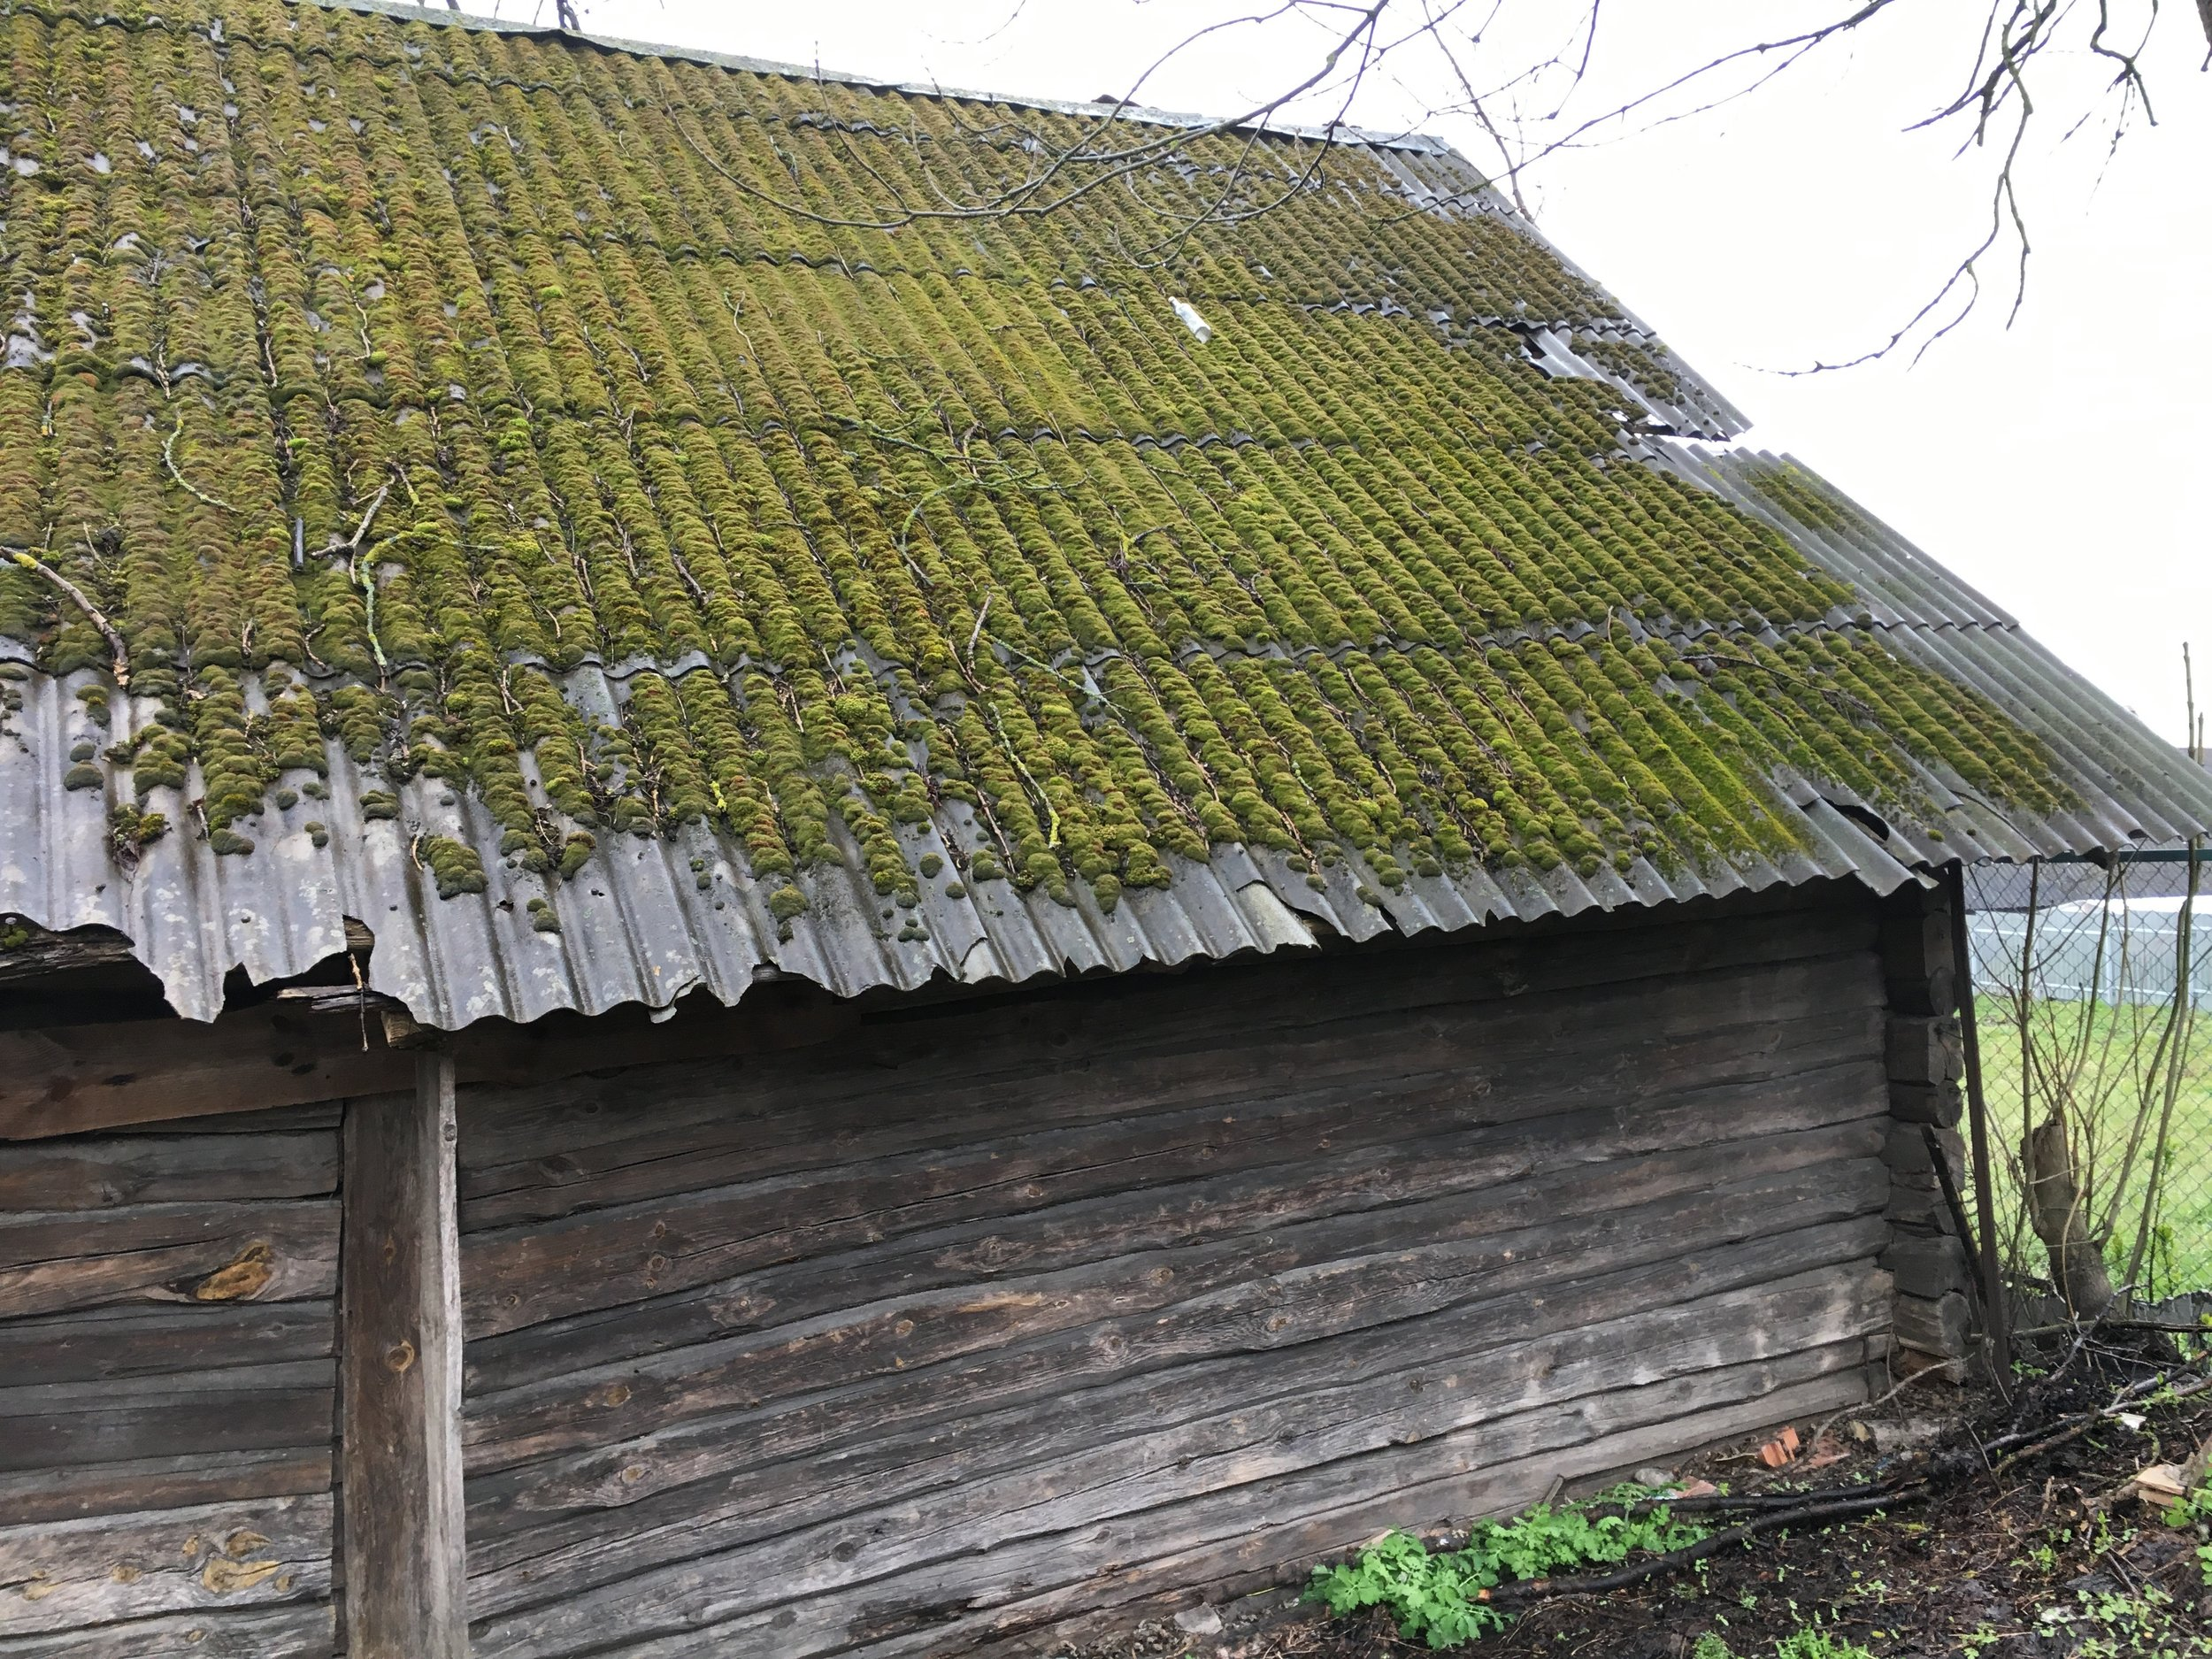 Belarus is very wet and moss grows everywhere.